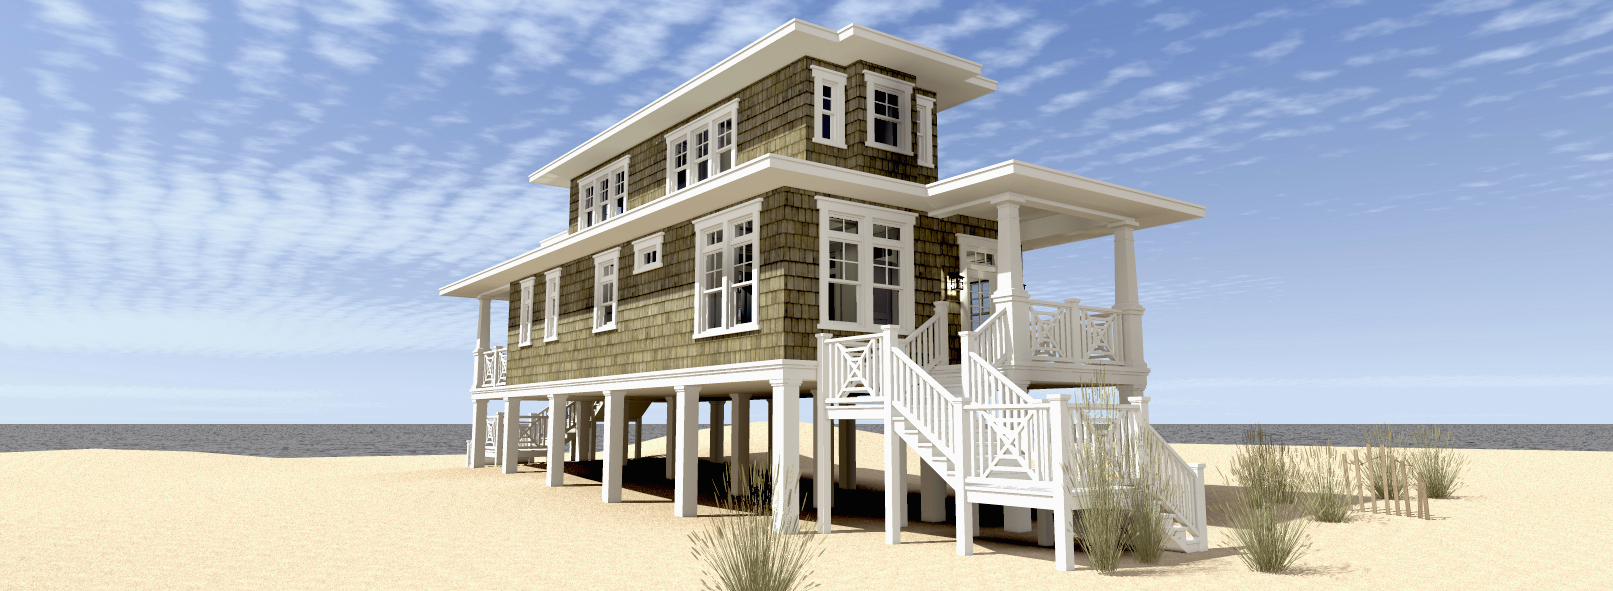 Beach house plan with walkout sundeck 44124td 2nd for Narrow beach house plans on pilings